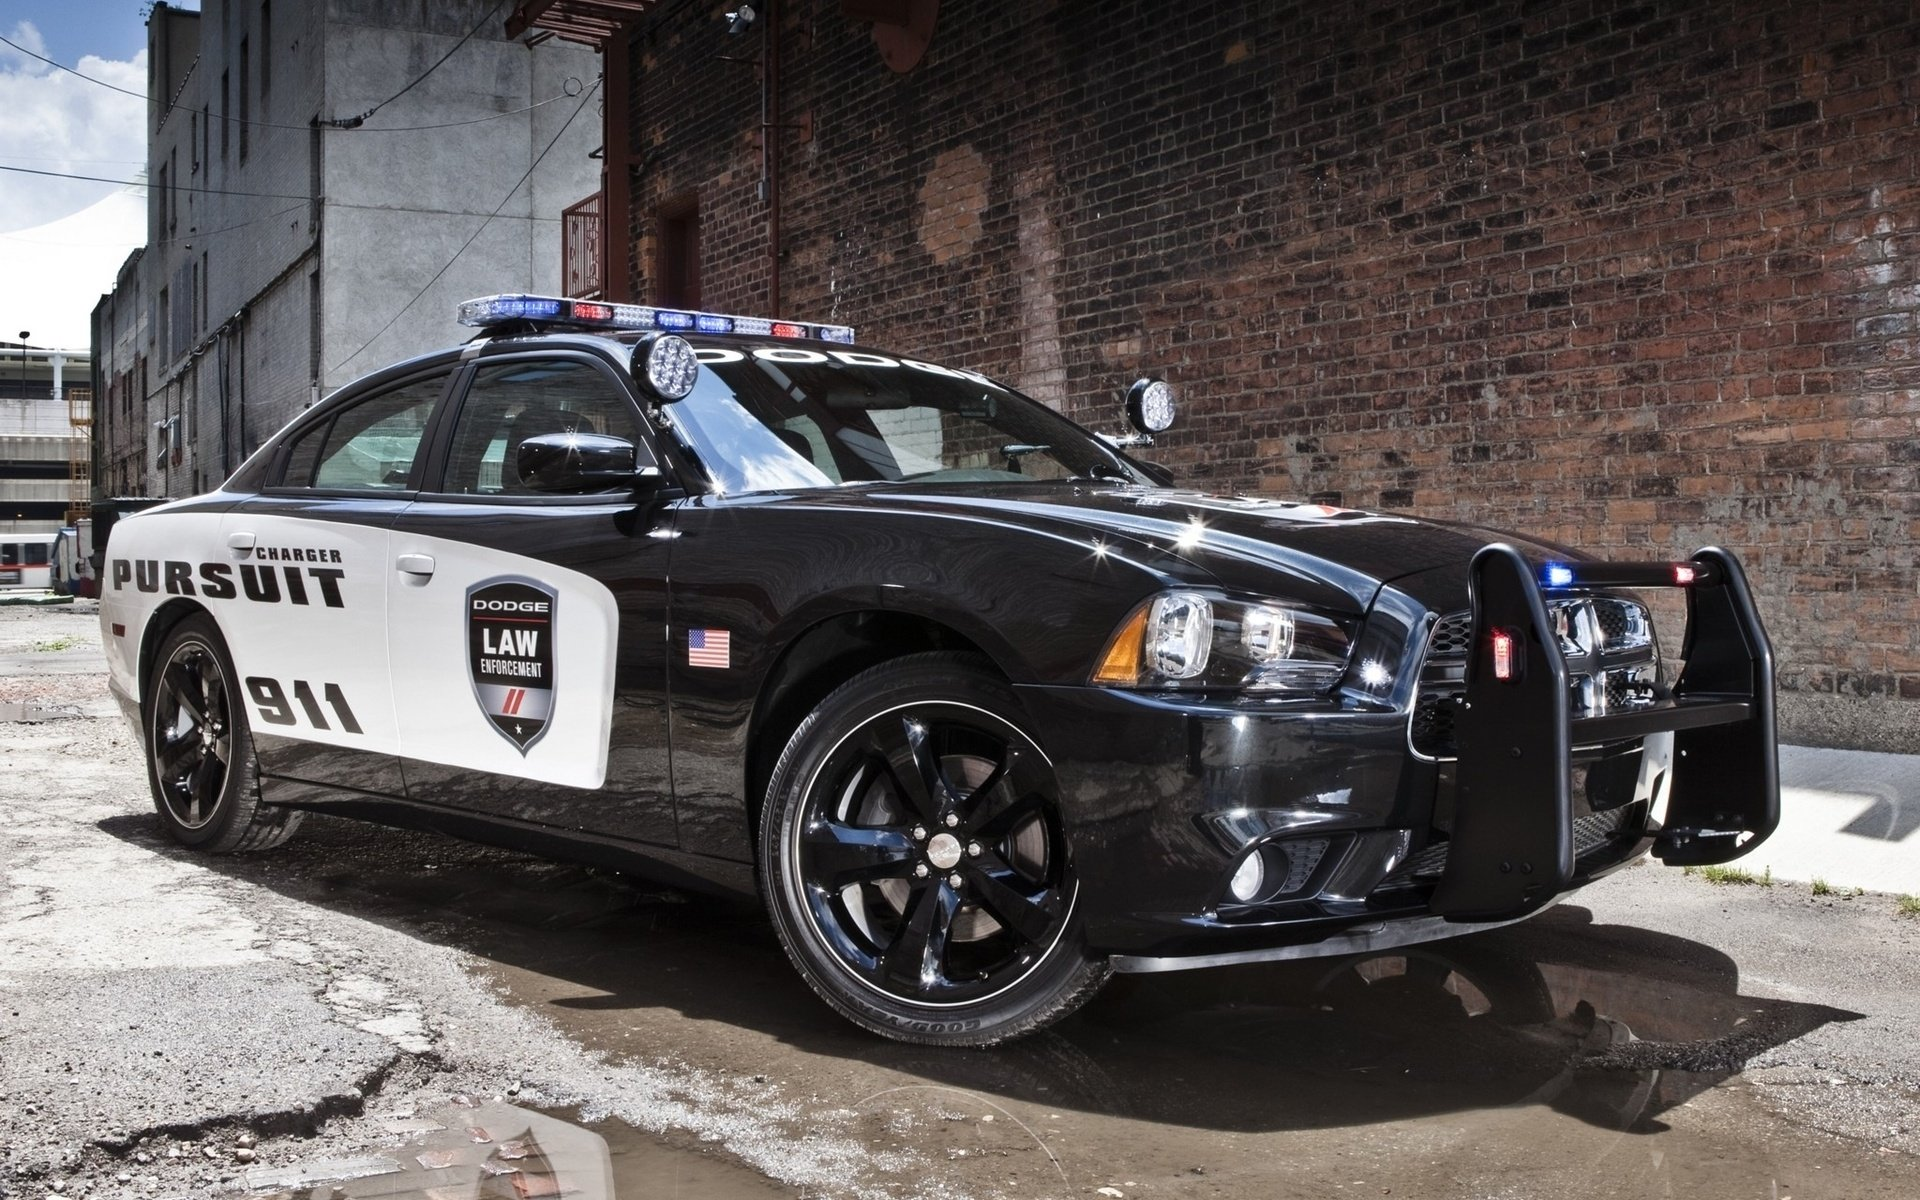 Wallpaper police car cool desktop HD Desktop Wallpapers 1920x1200